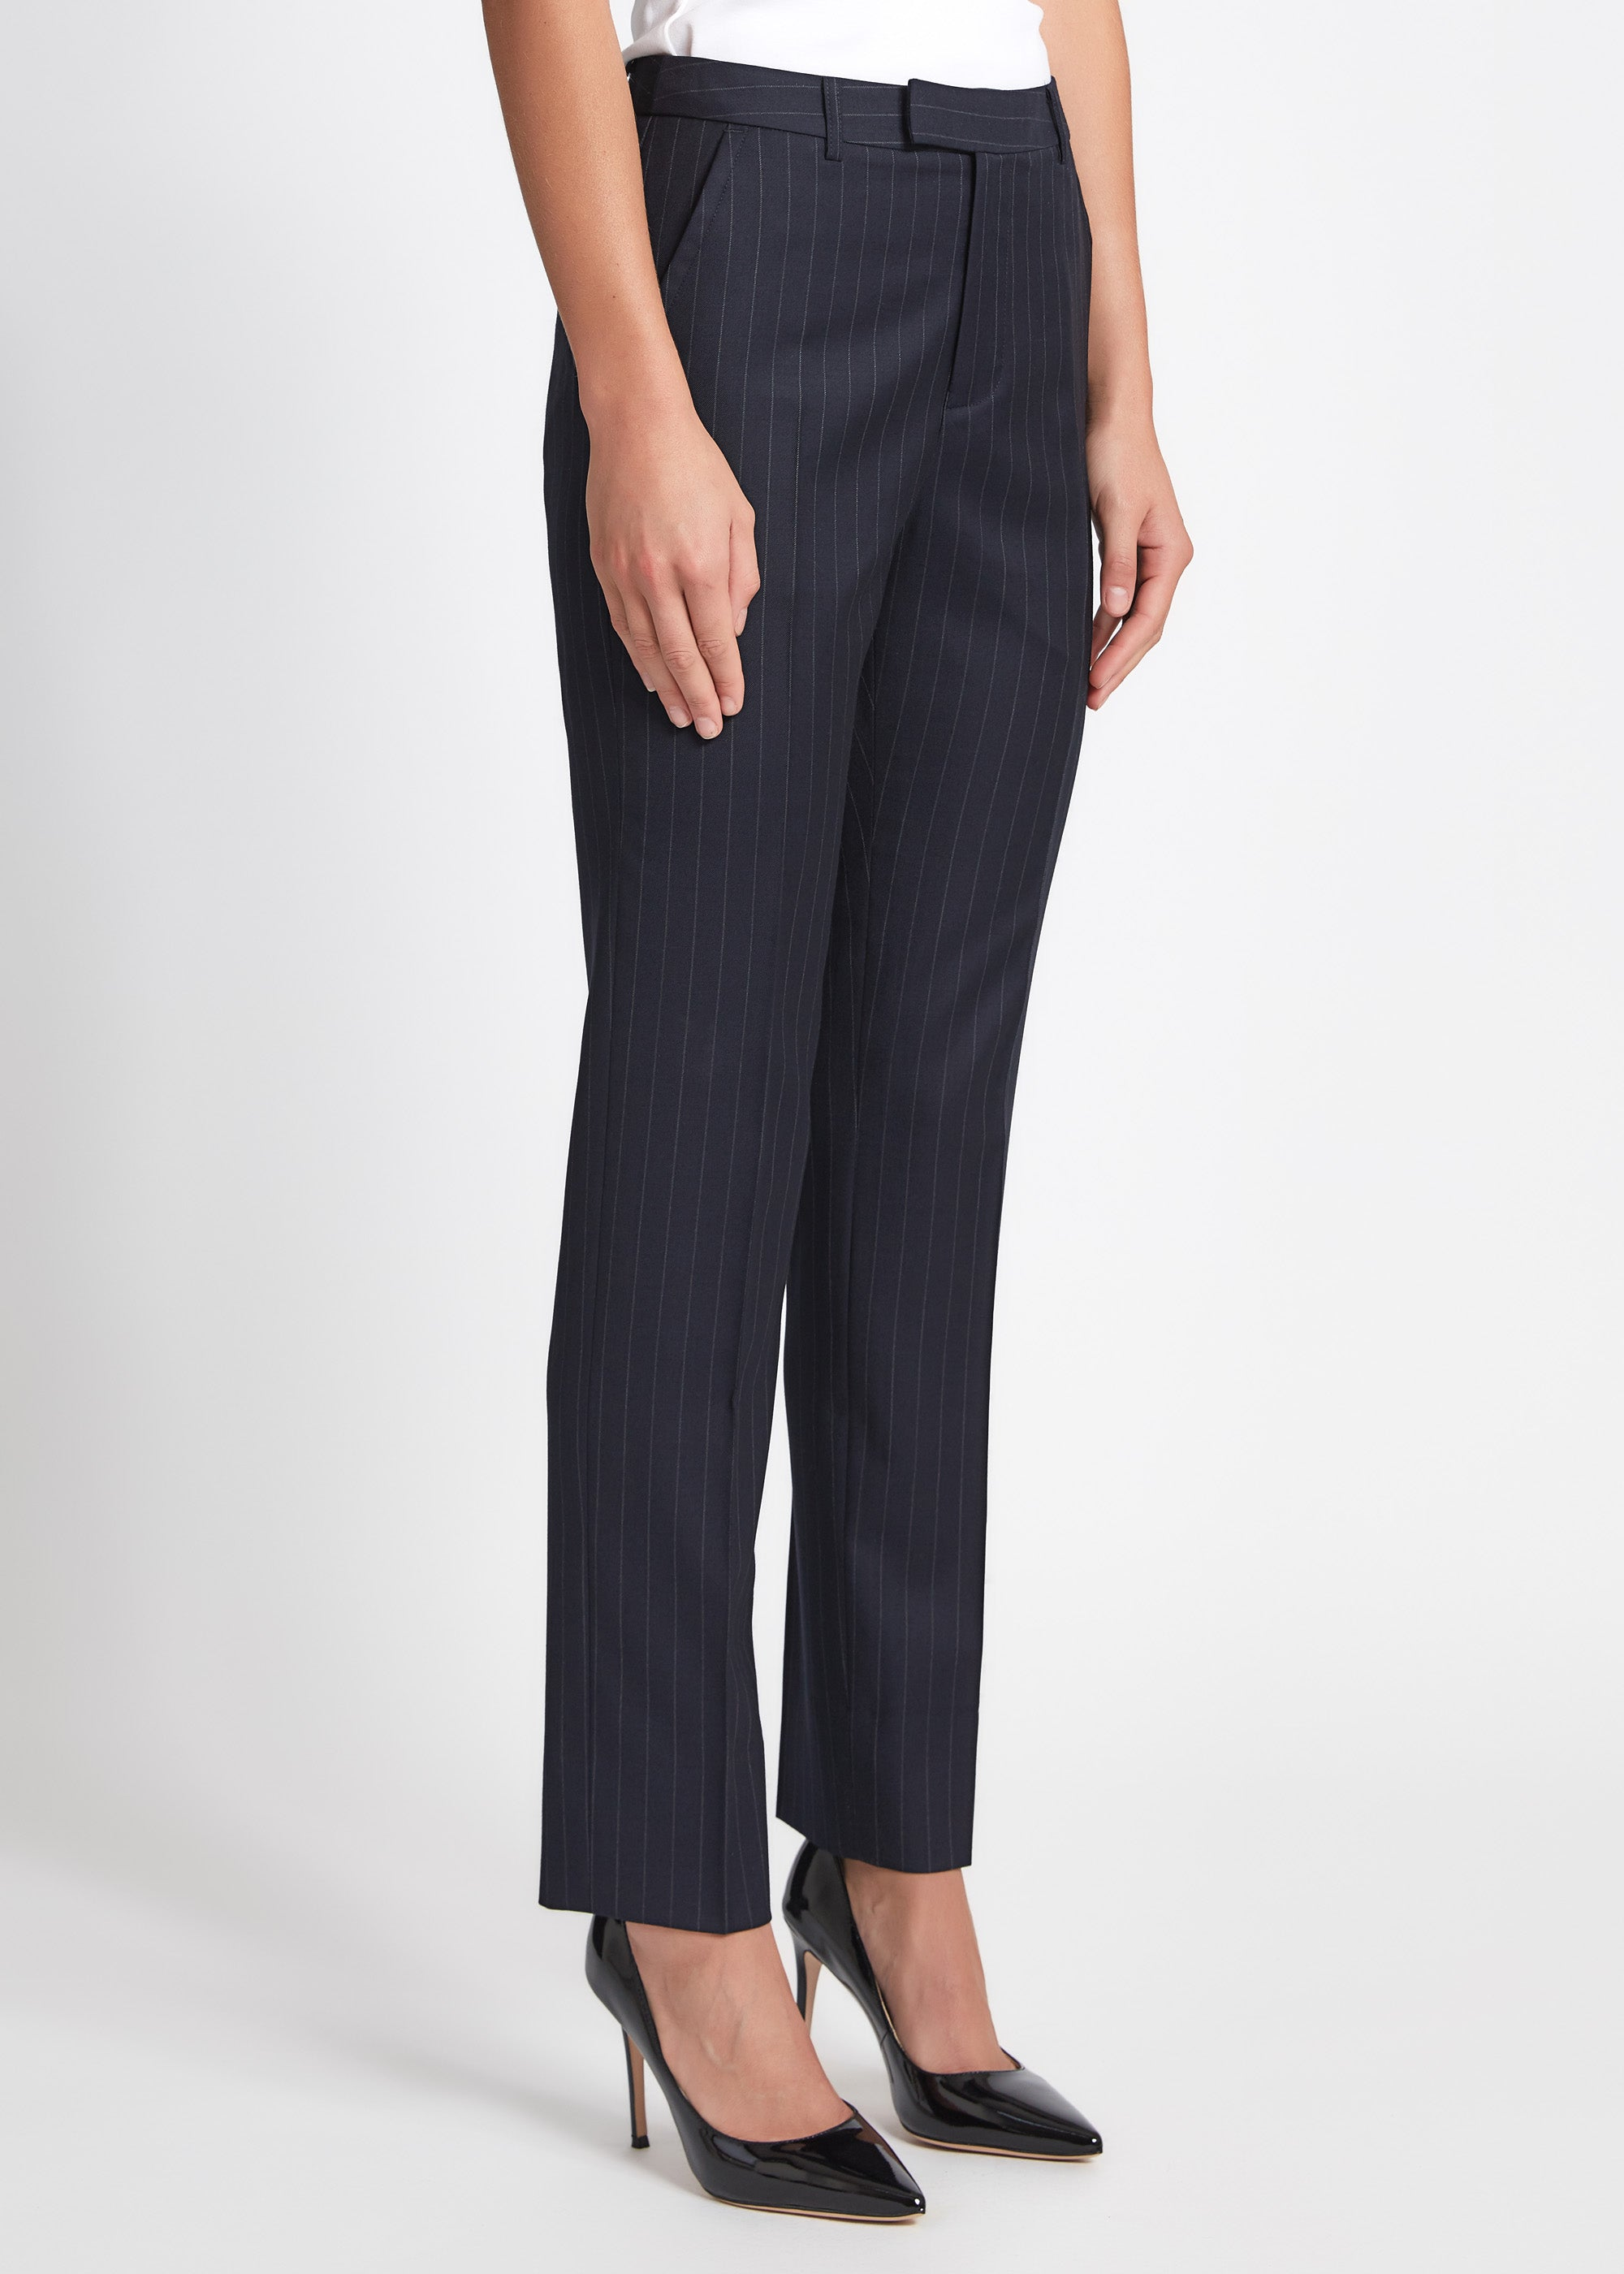 Ruby Pant - Navy Chalk